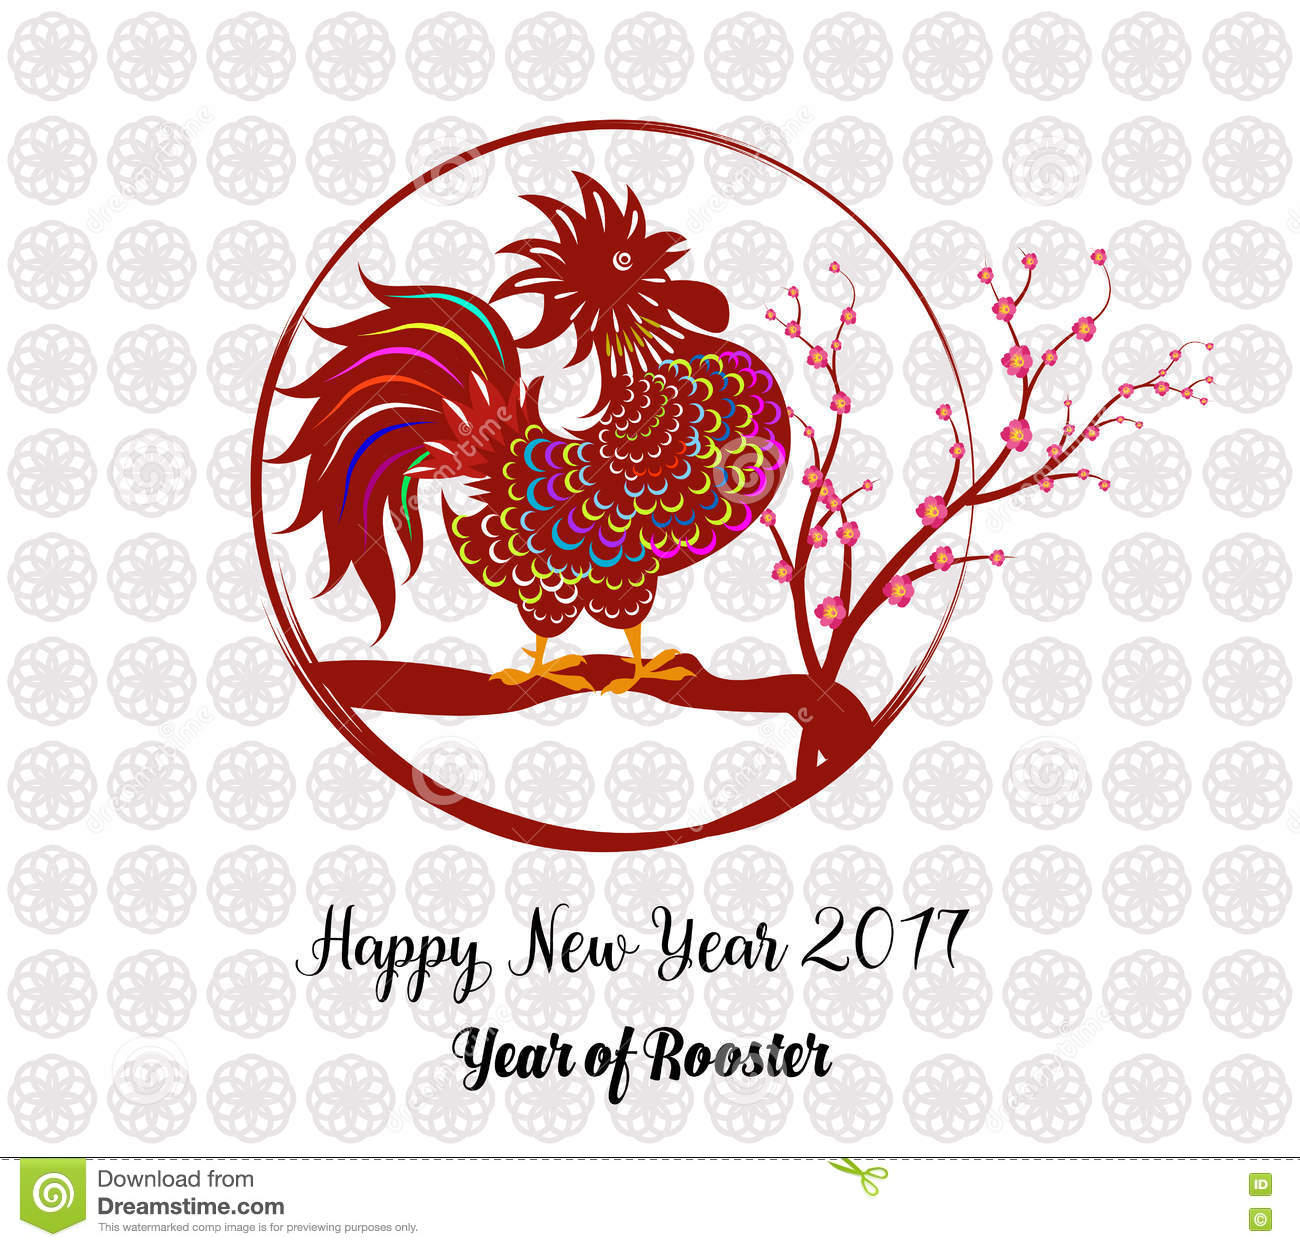 2017 happy new year greeting card celebration chinese new year of download 2017 happy new year greeting card celebration chinese new year of the rooster m4hsunfo